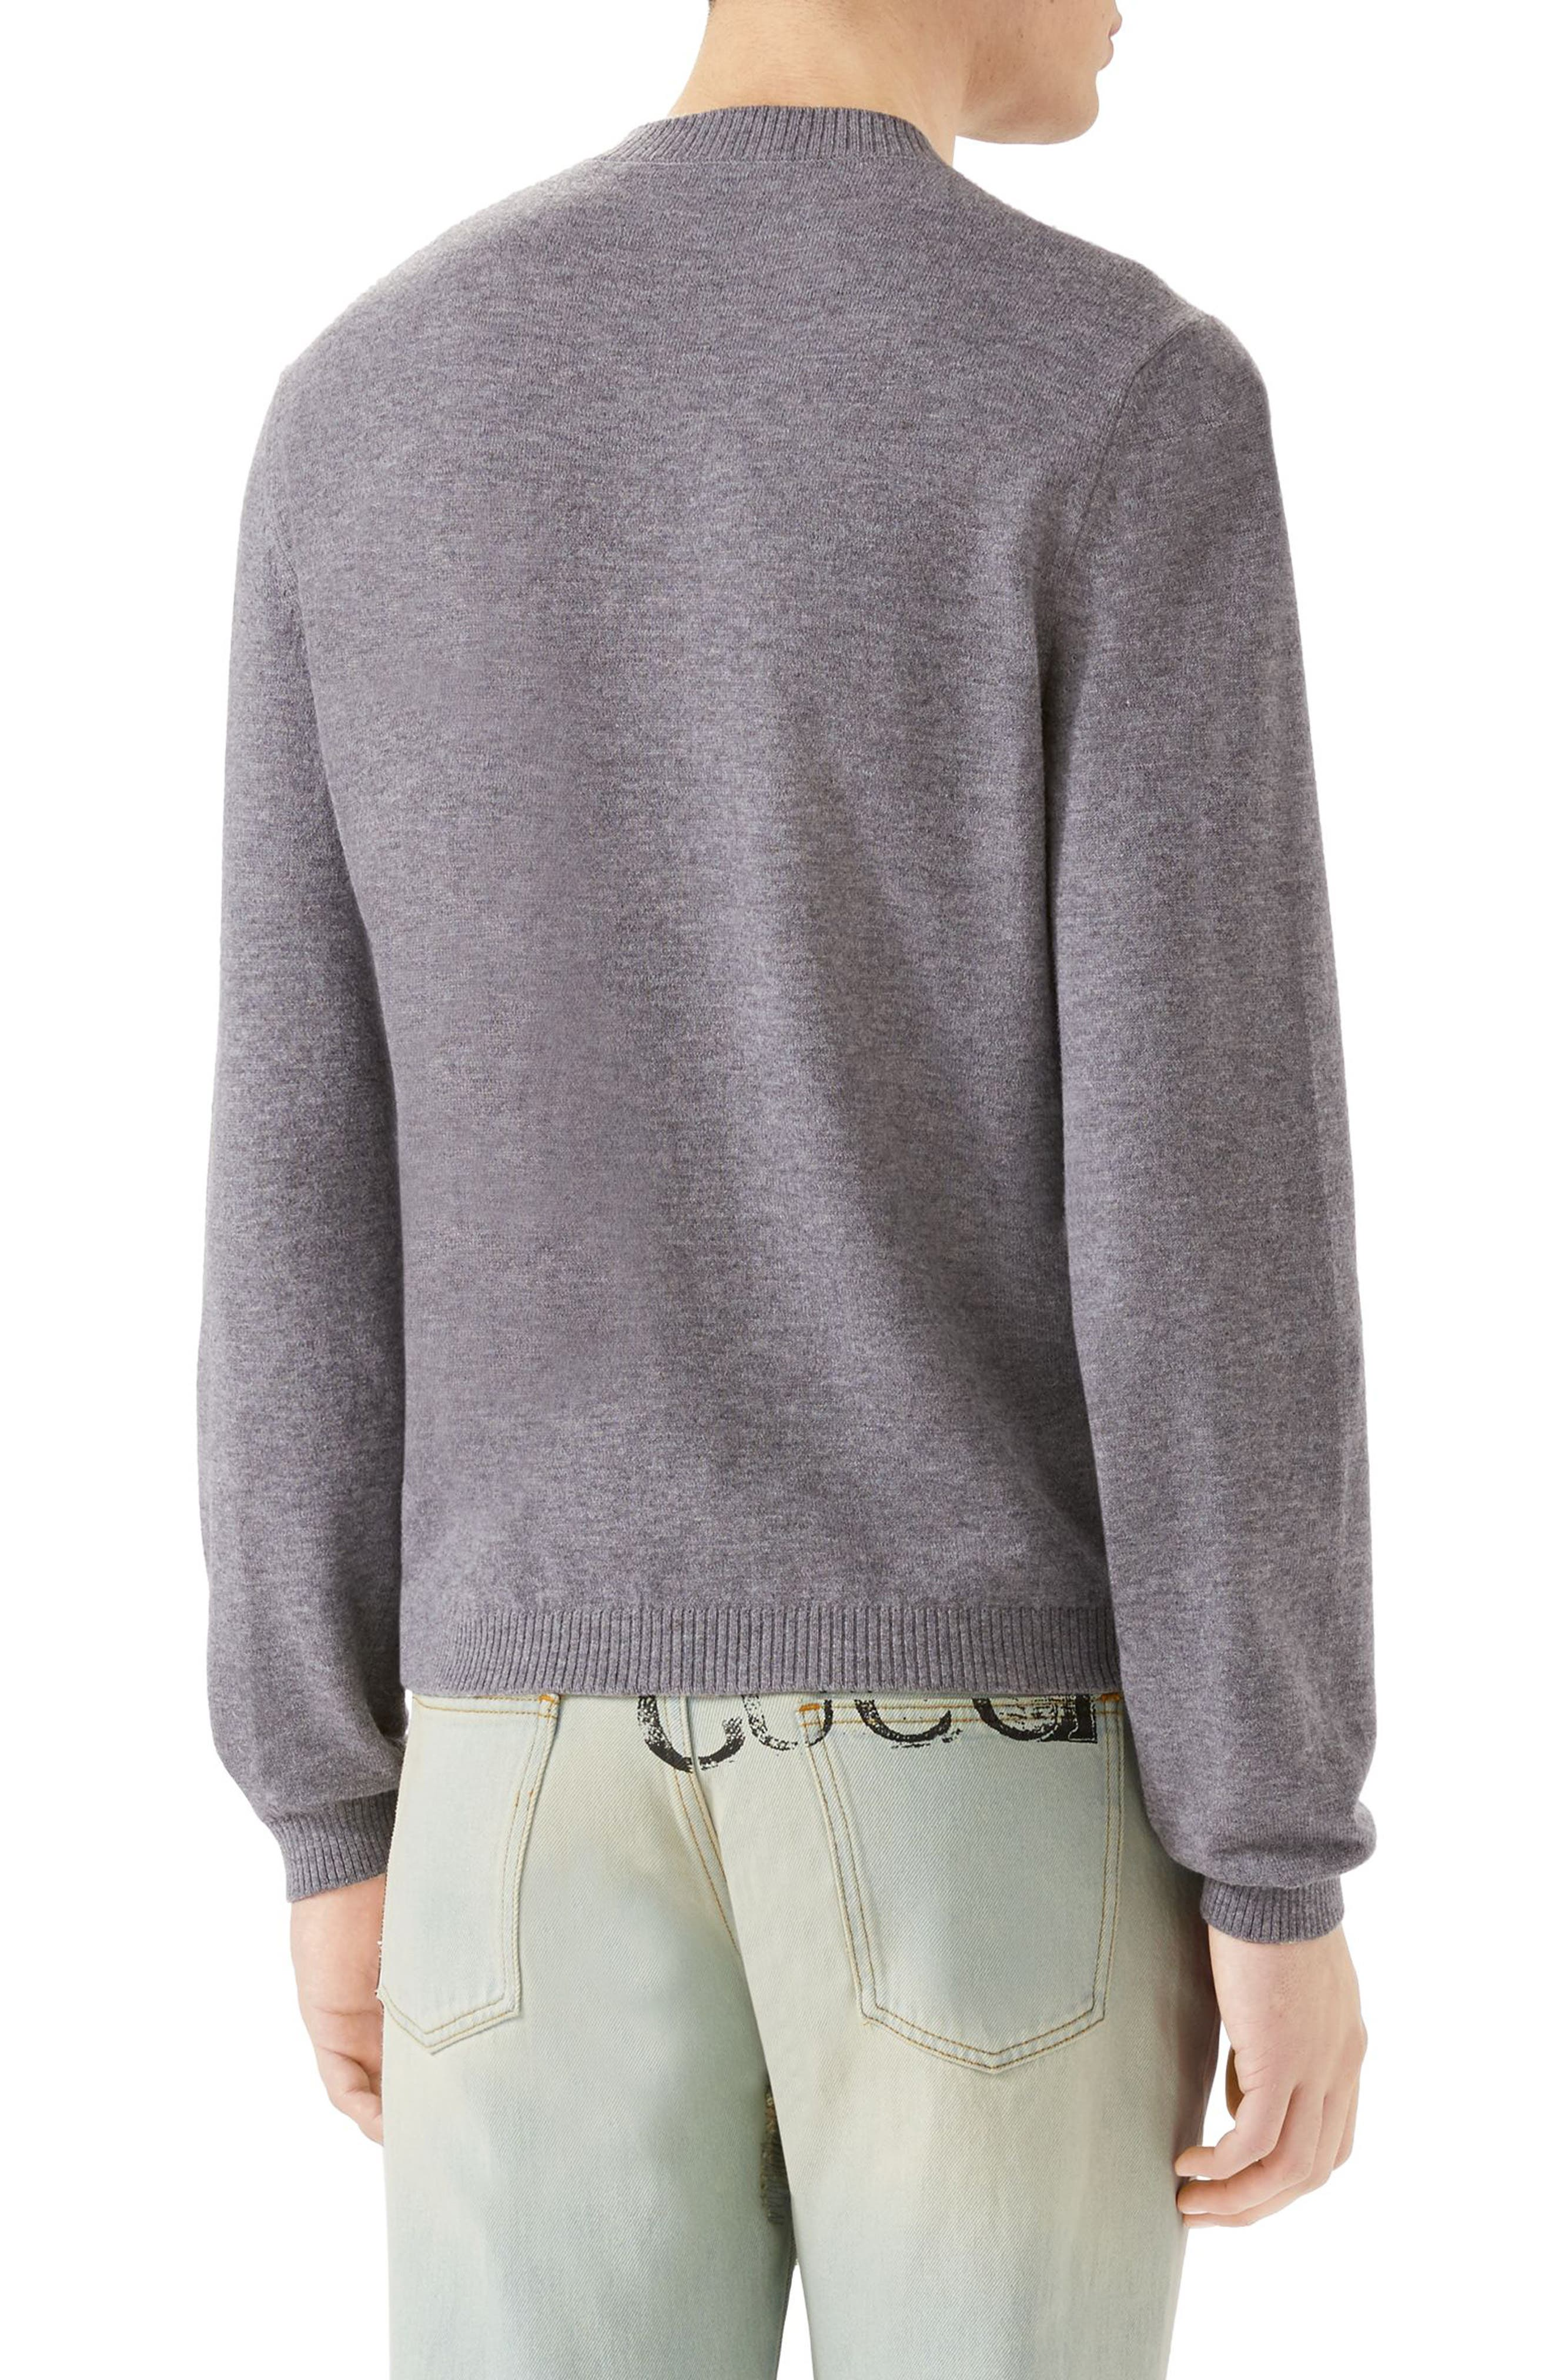 Embroidered Wool Crewneck Sweater,                             Alternate thumbnail 2, color,                             Medium Grey